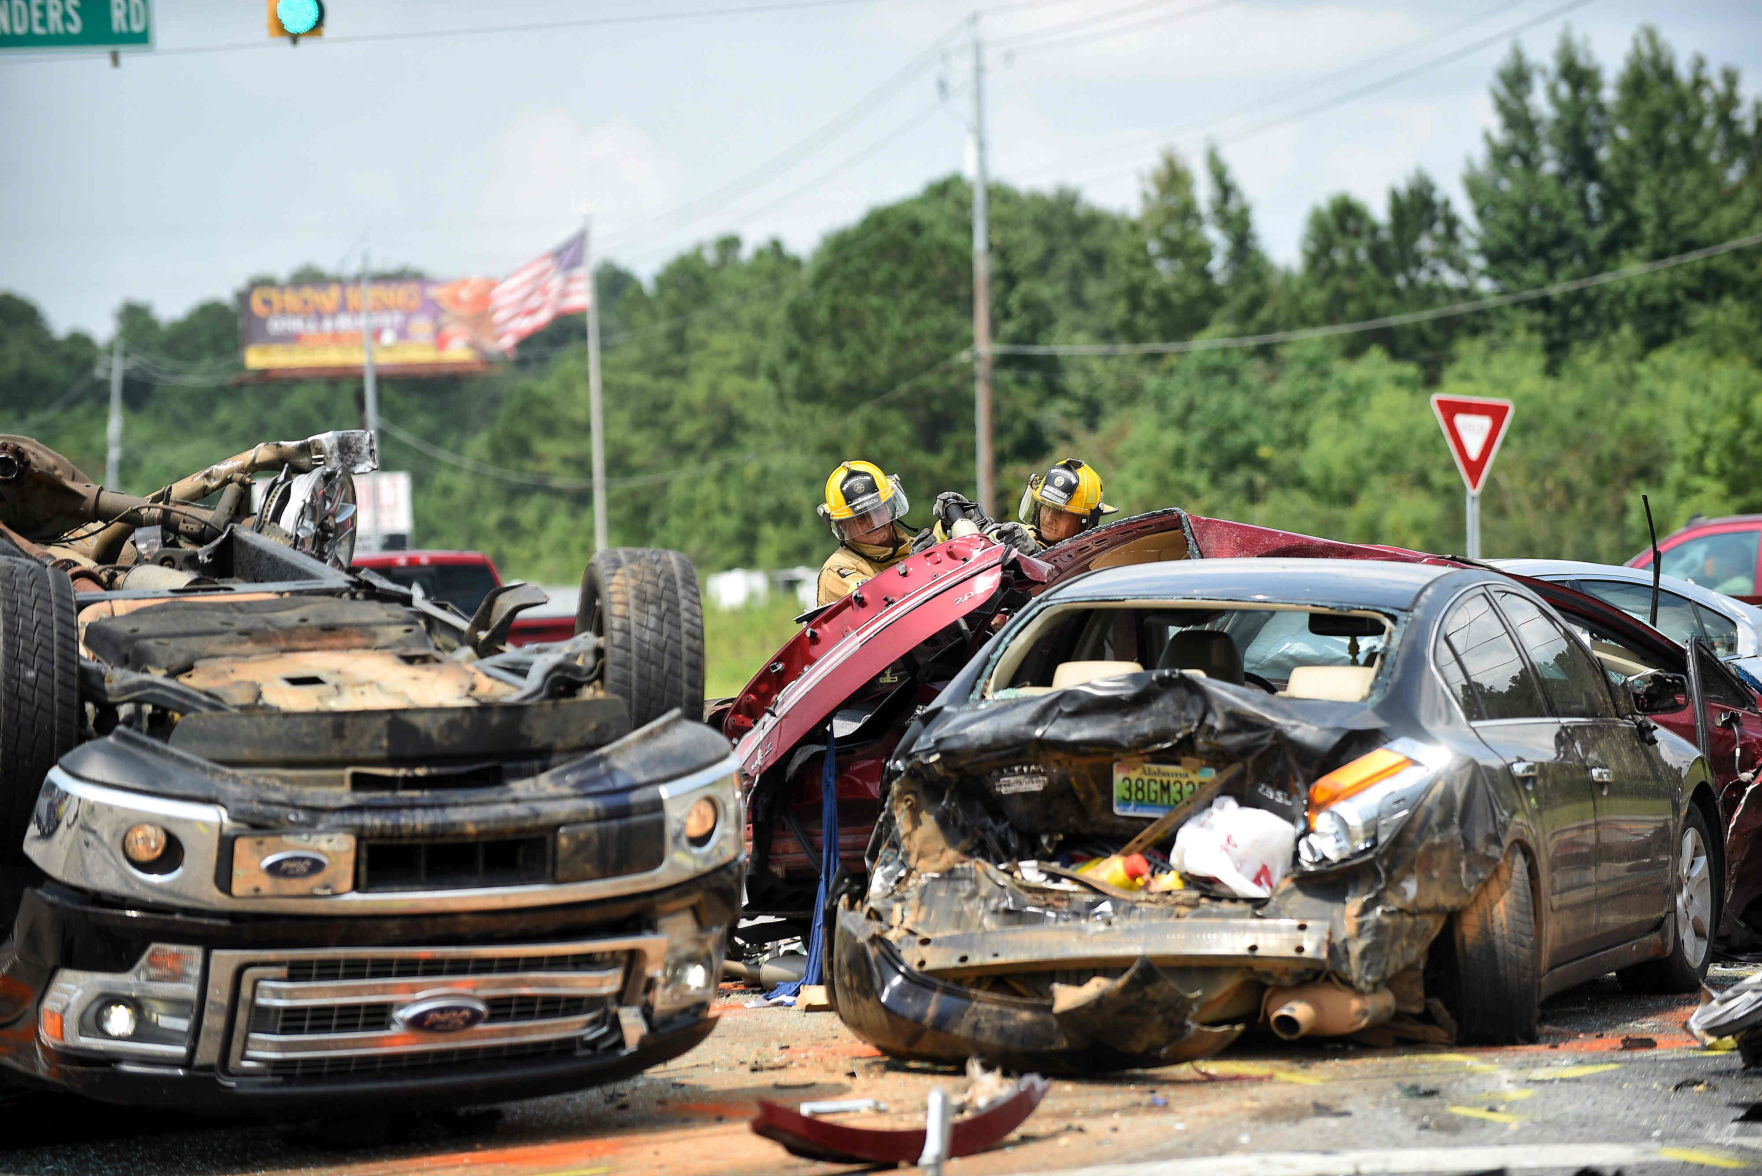 Injured In Accident Webb Man Killed Several Injured In Major Accident On Highway 231